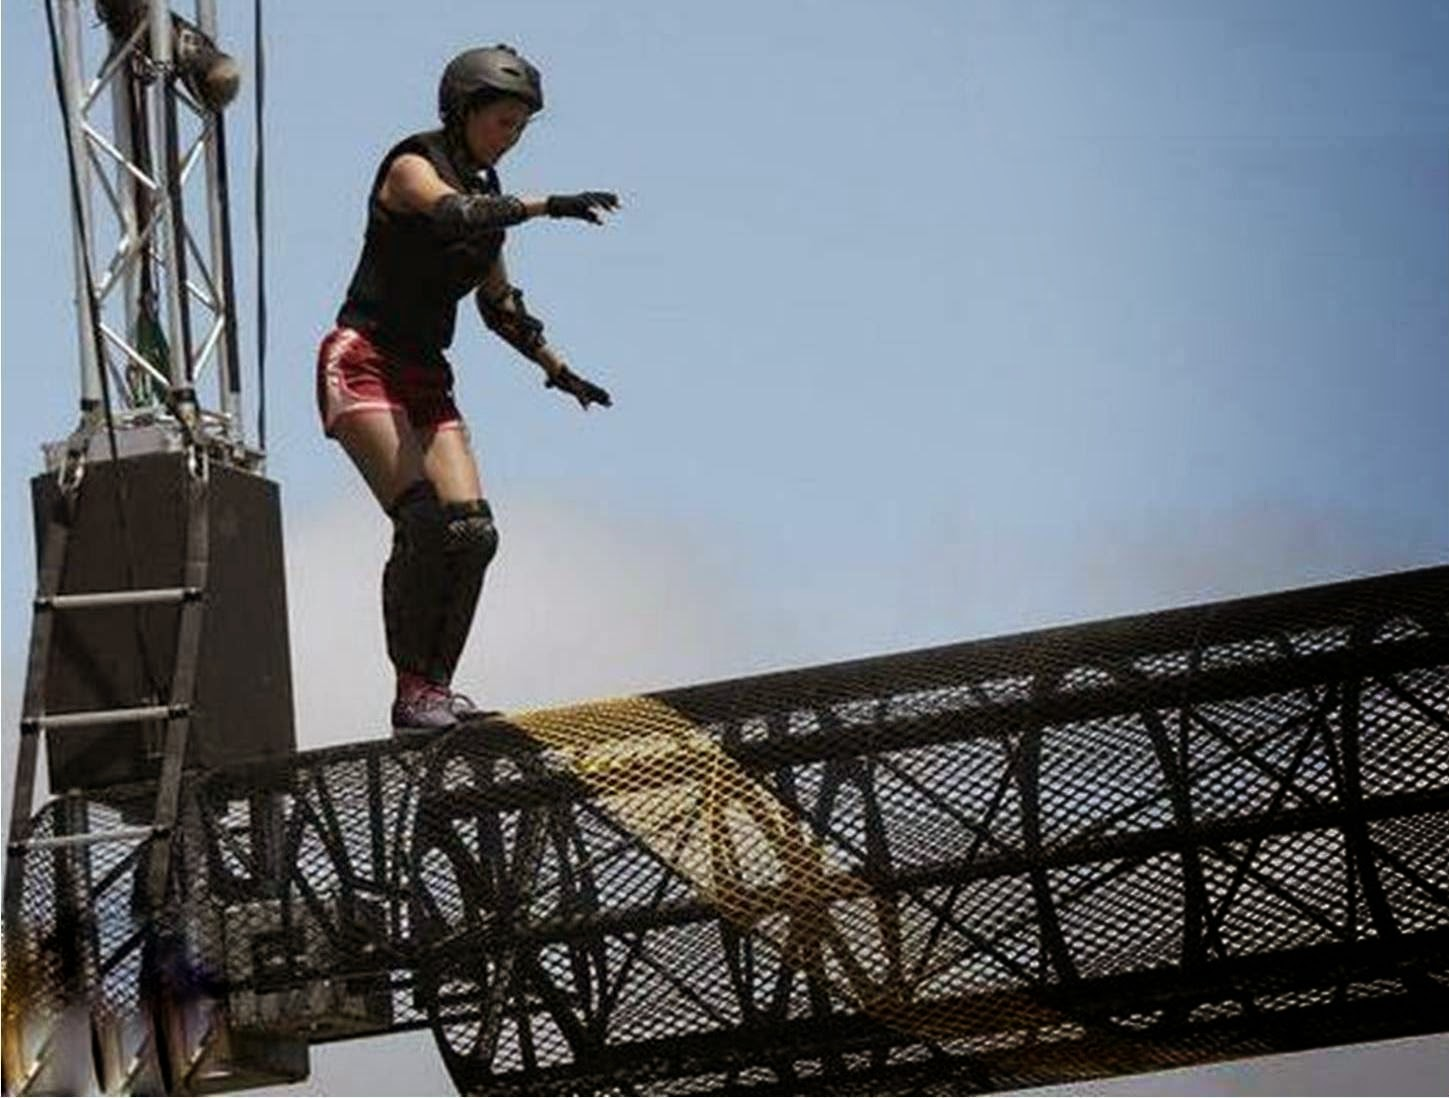 Rochelle on height at rolling rotter for performing Golmal Stunt in Fear Factor Khatron Ke Khiladi 5